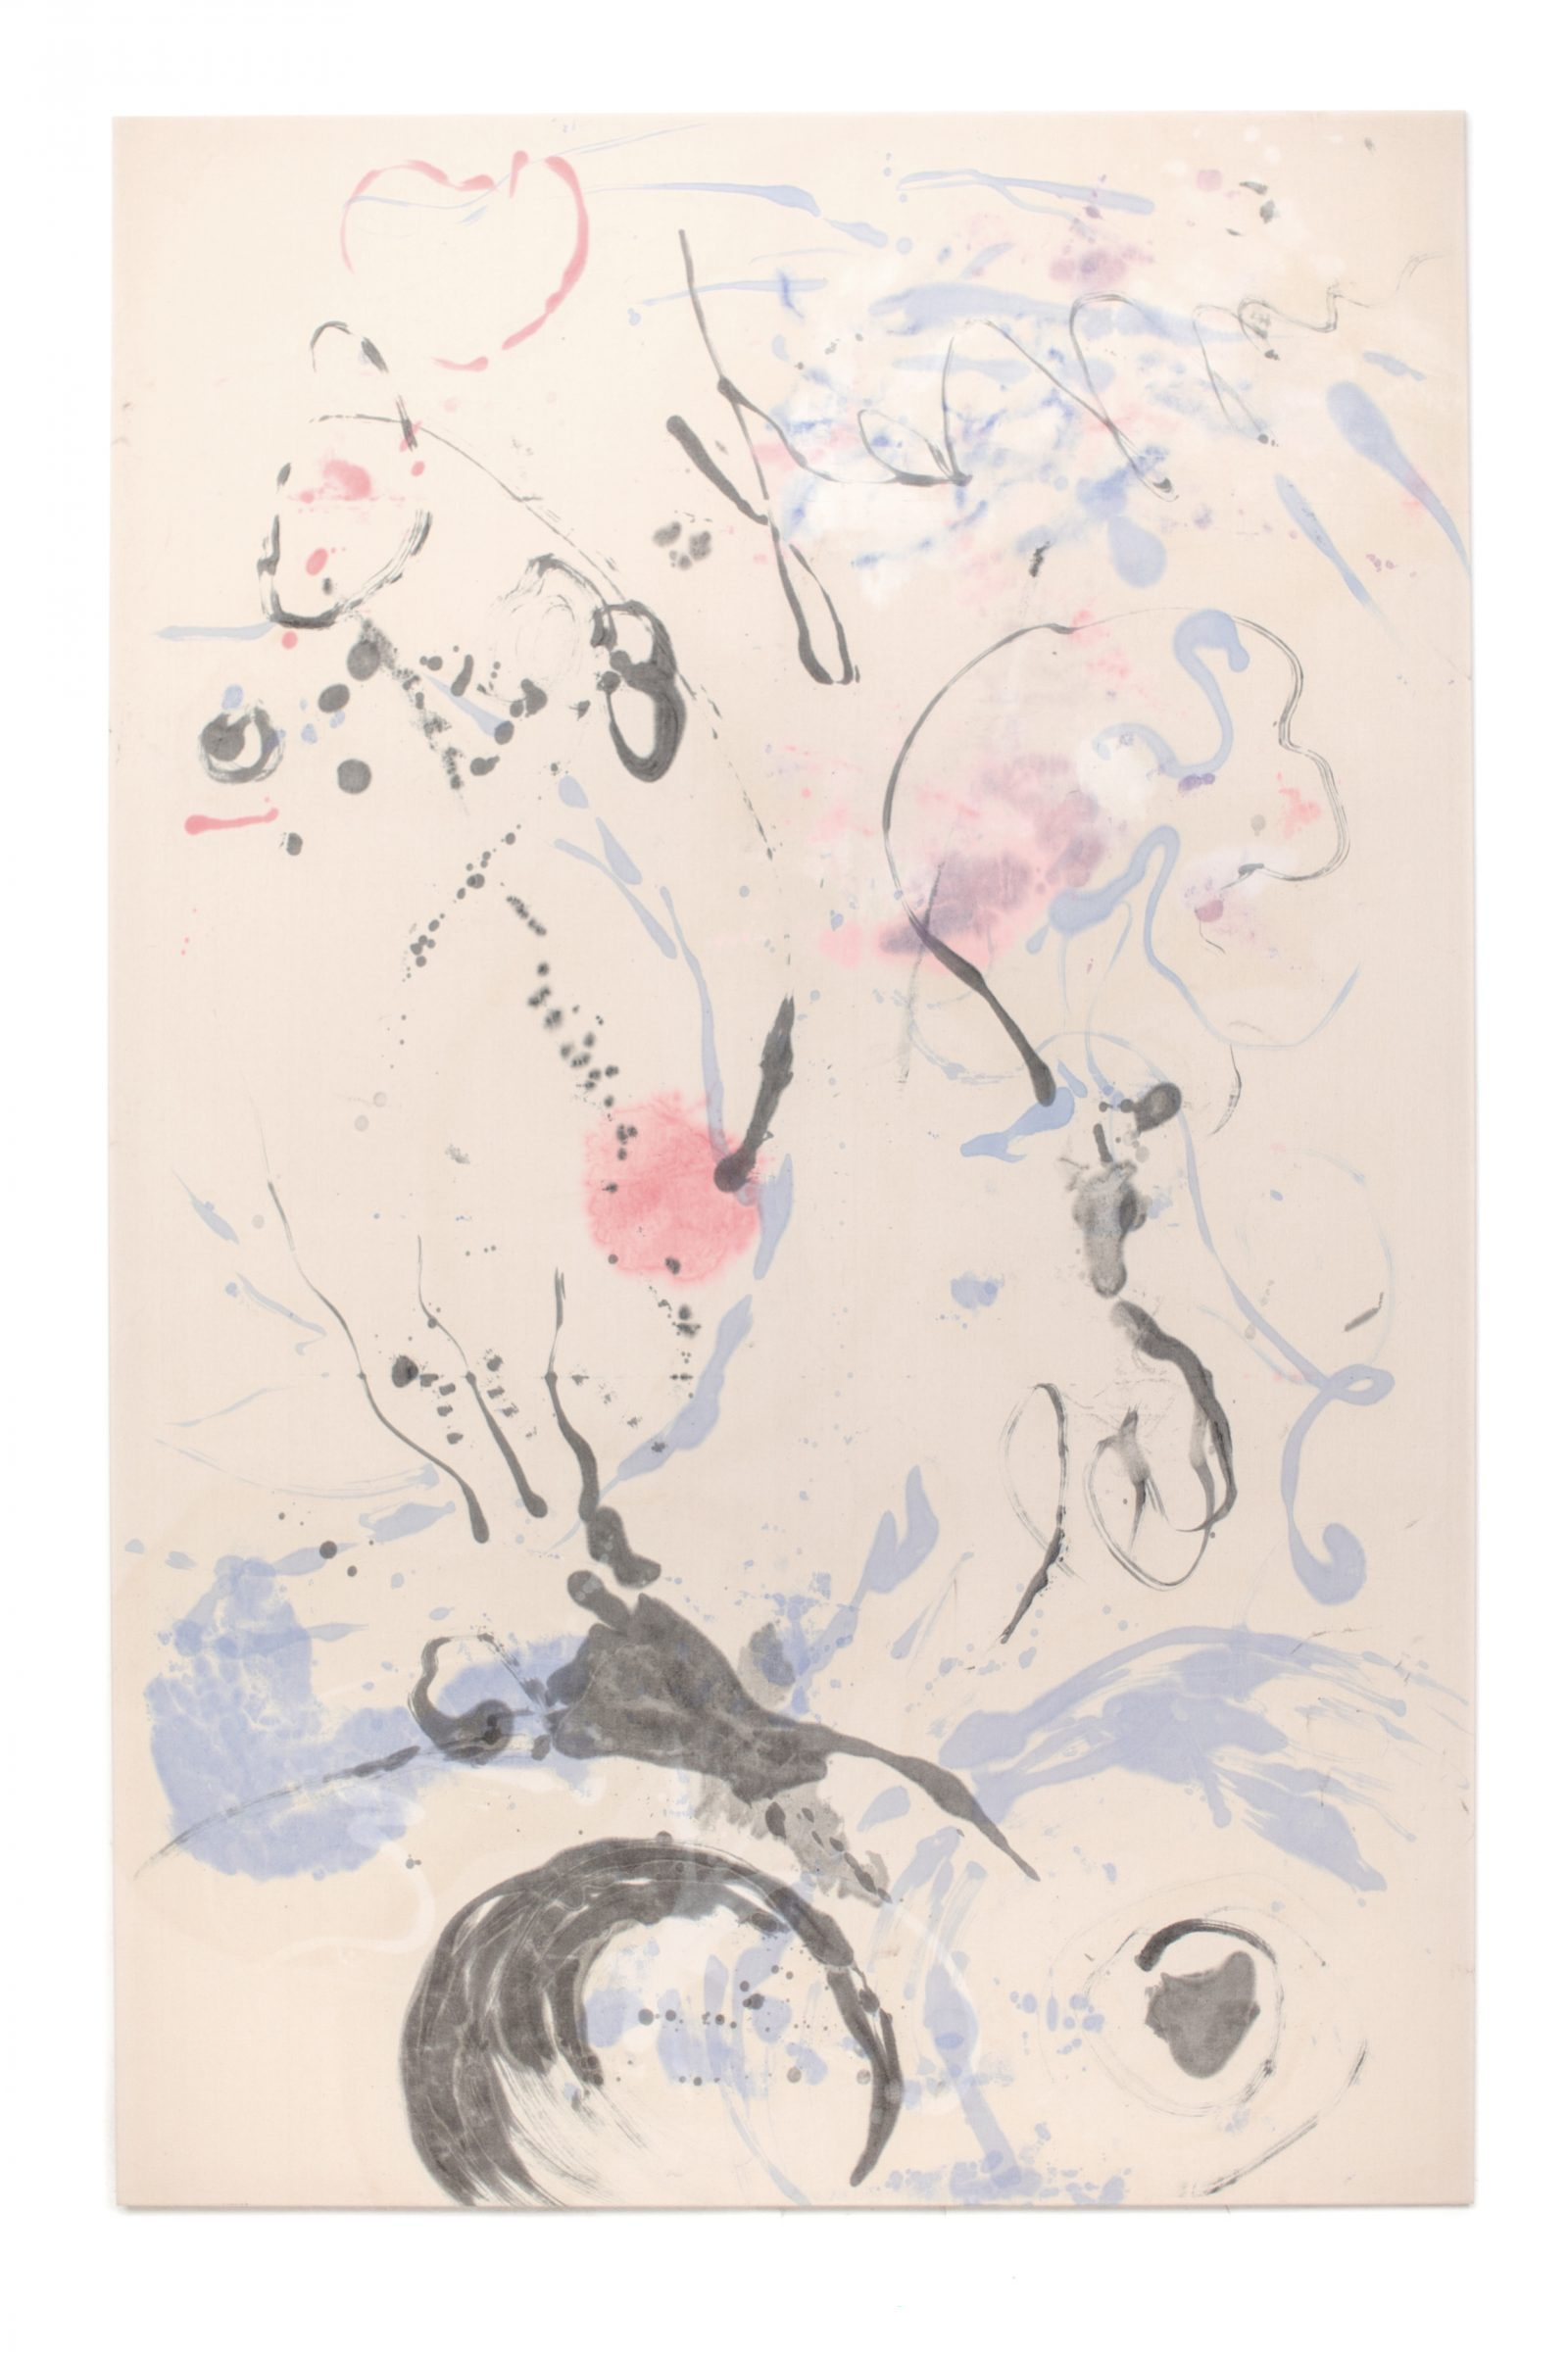 Gunna-Schmidt_A-Joyous-Flow-of-Endless-Becoming-Enigma-No2_-240-x-155-cm_-oil-on-cotton-duck_img-Matthias-Kindler_bA35R4675-e1482699352497